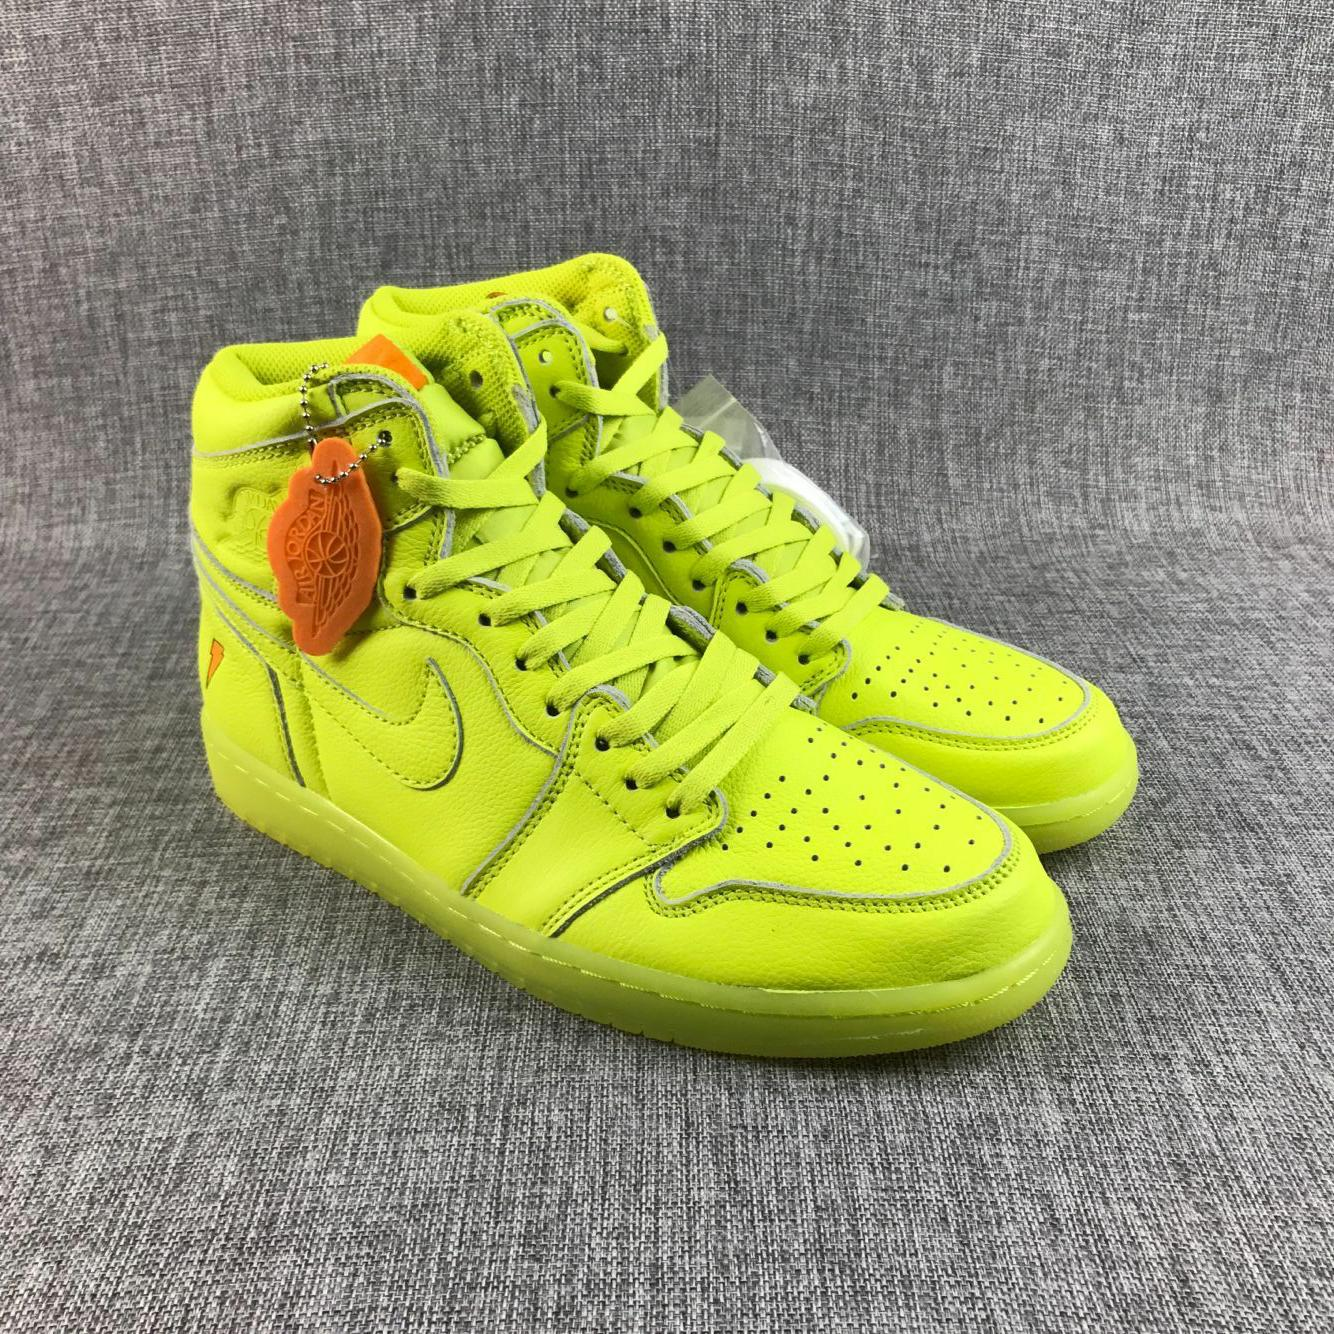 New Air Jordan 1 Gatorade Fluorscent Green Shoes